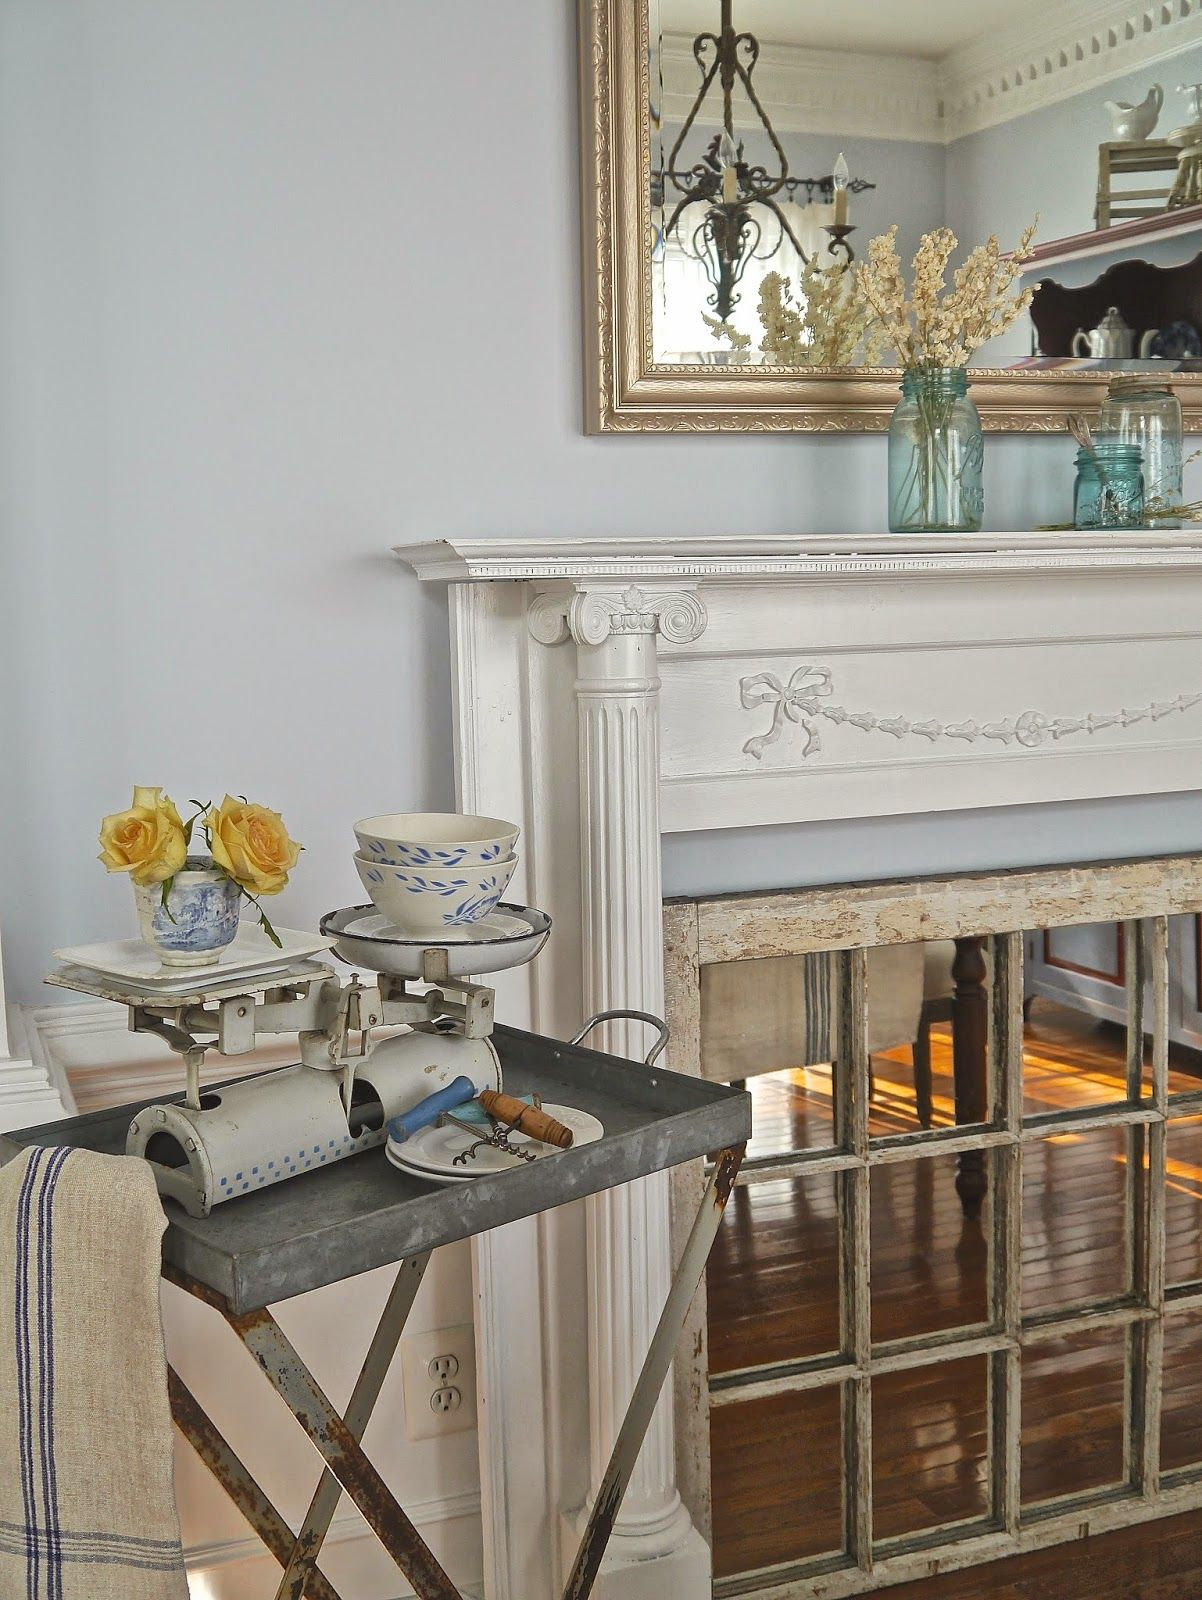 Chateau Chic: Subtle Blue Accents in the Dining Room